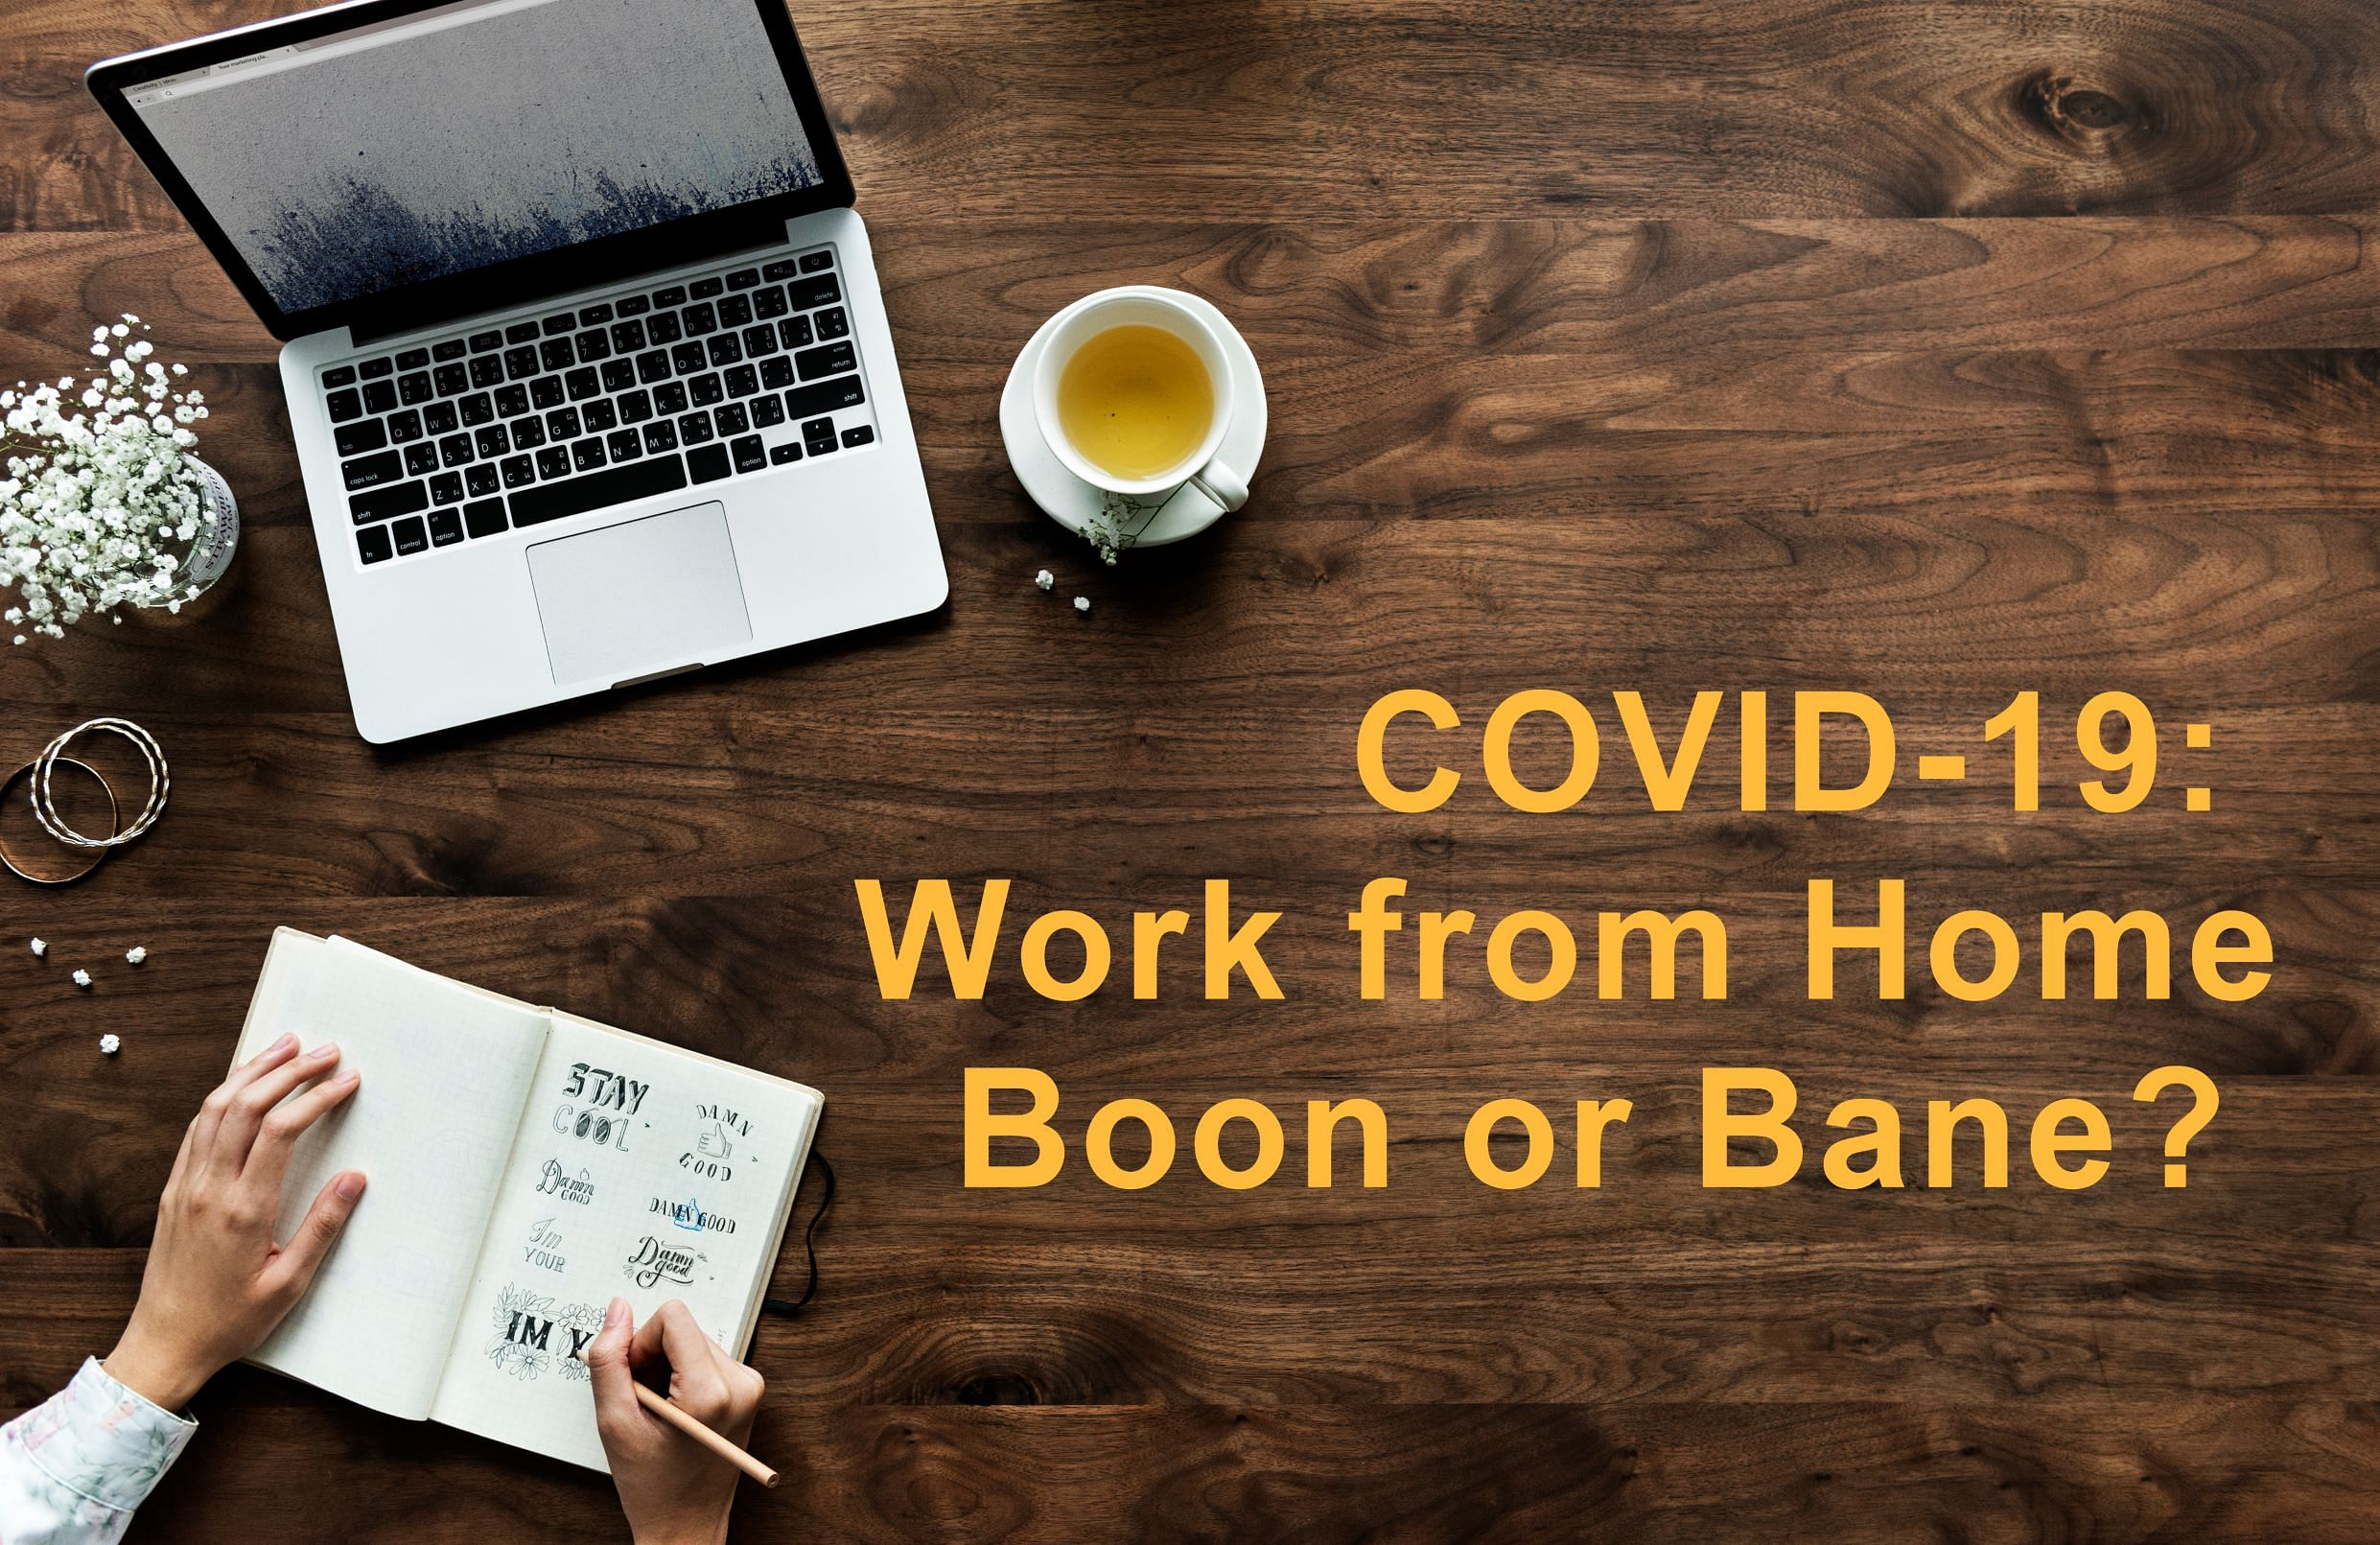 COVID-19: Work from Home- Boon or Bane?